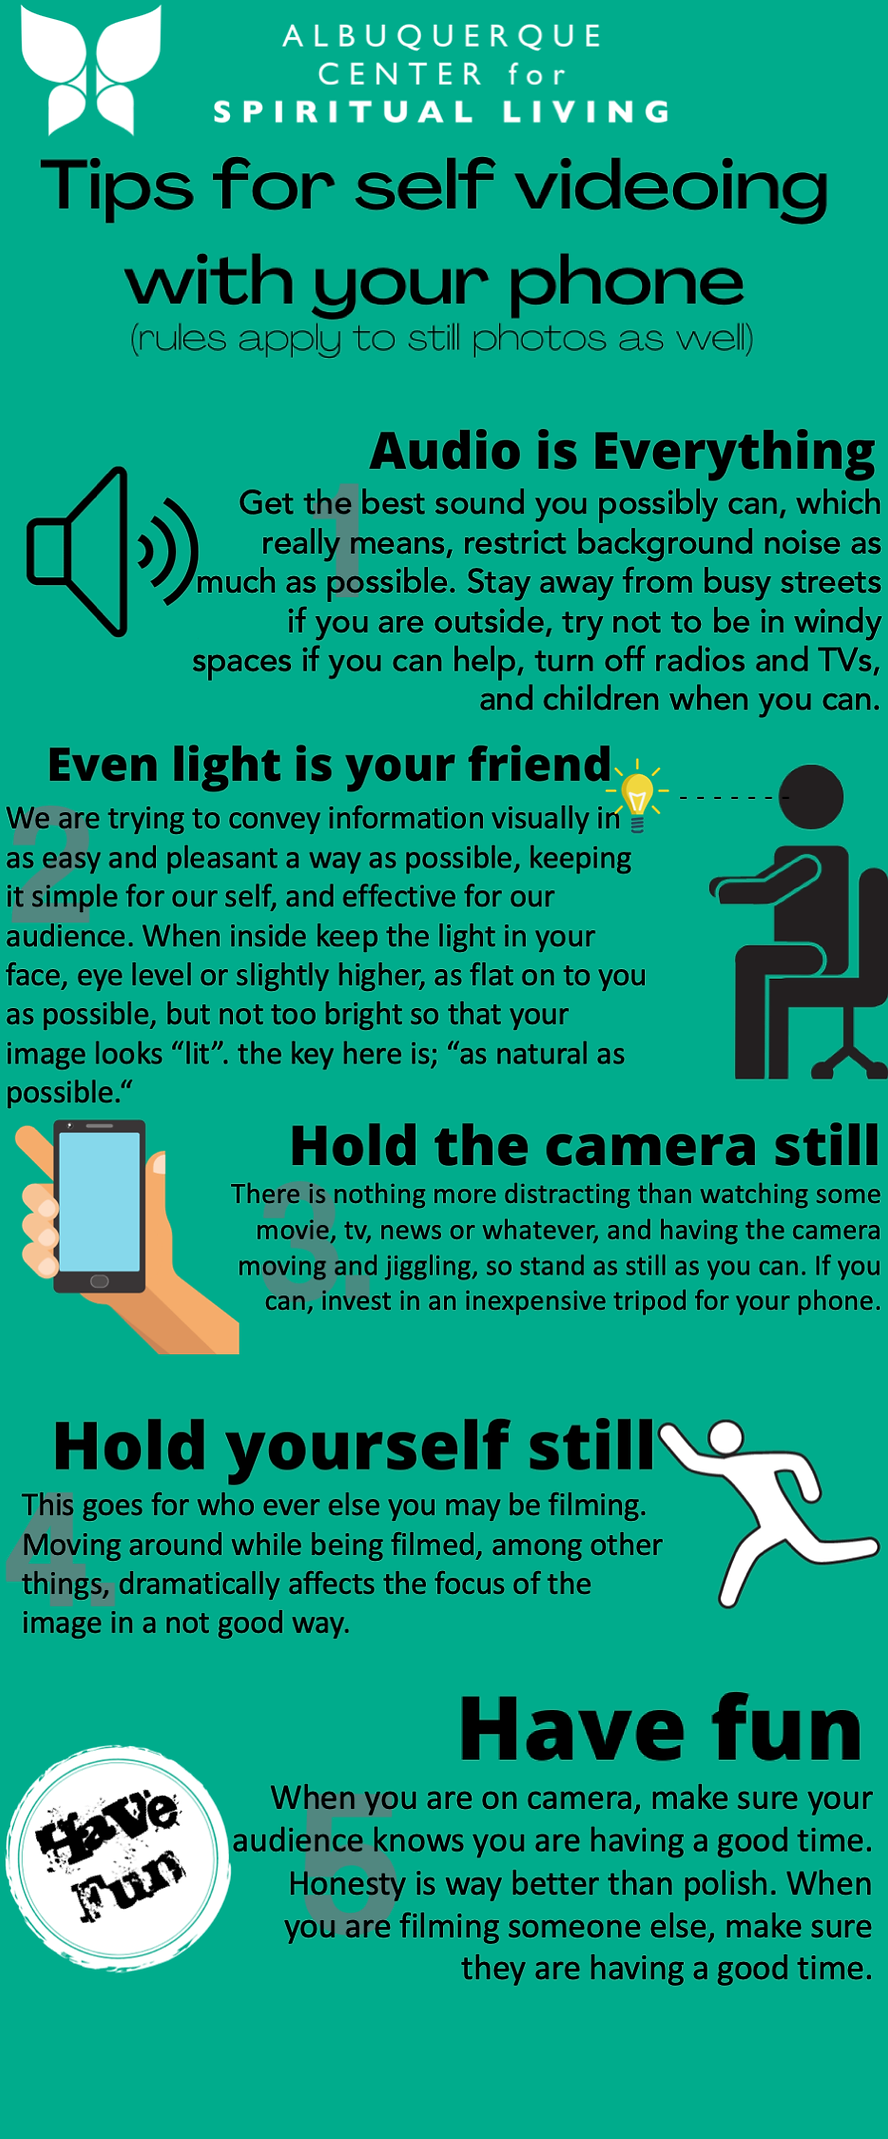 ABQ CSL Tips for self-videoing with your